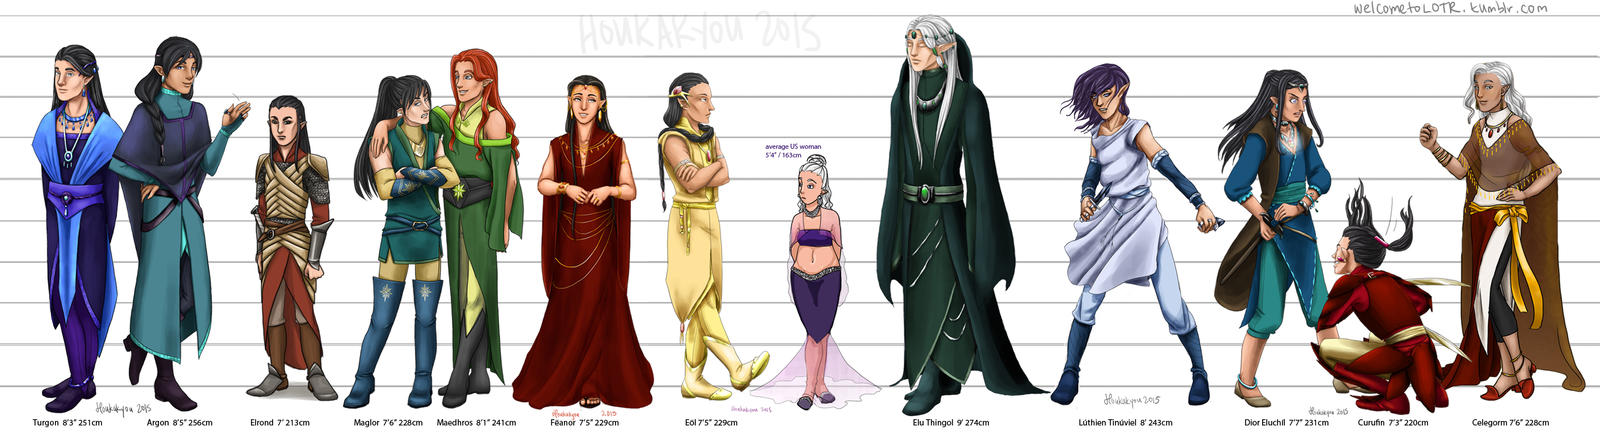 LotR/S: Silmarillion Height Chart by welcometolotr